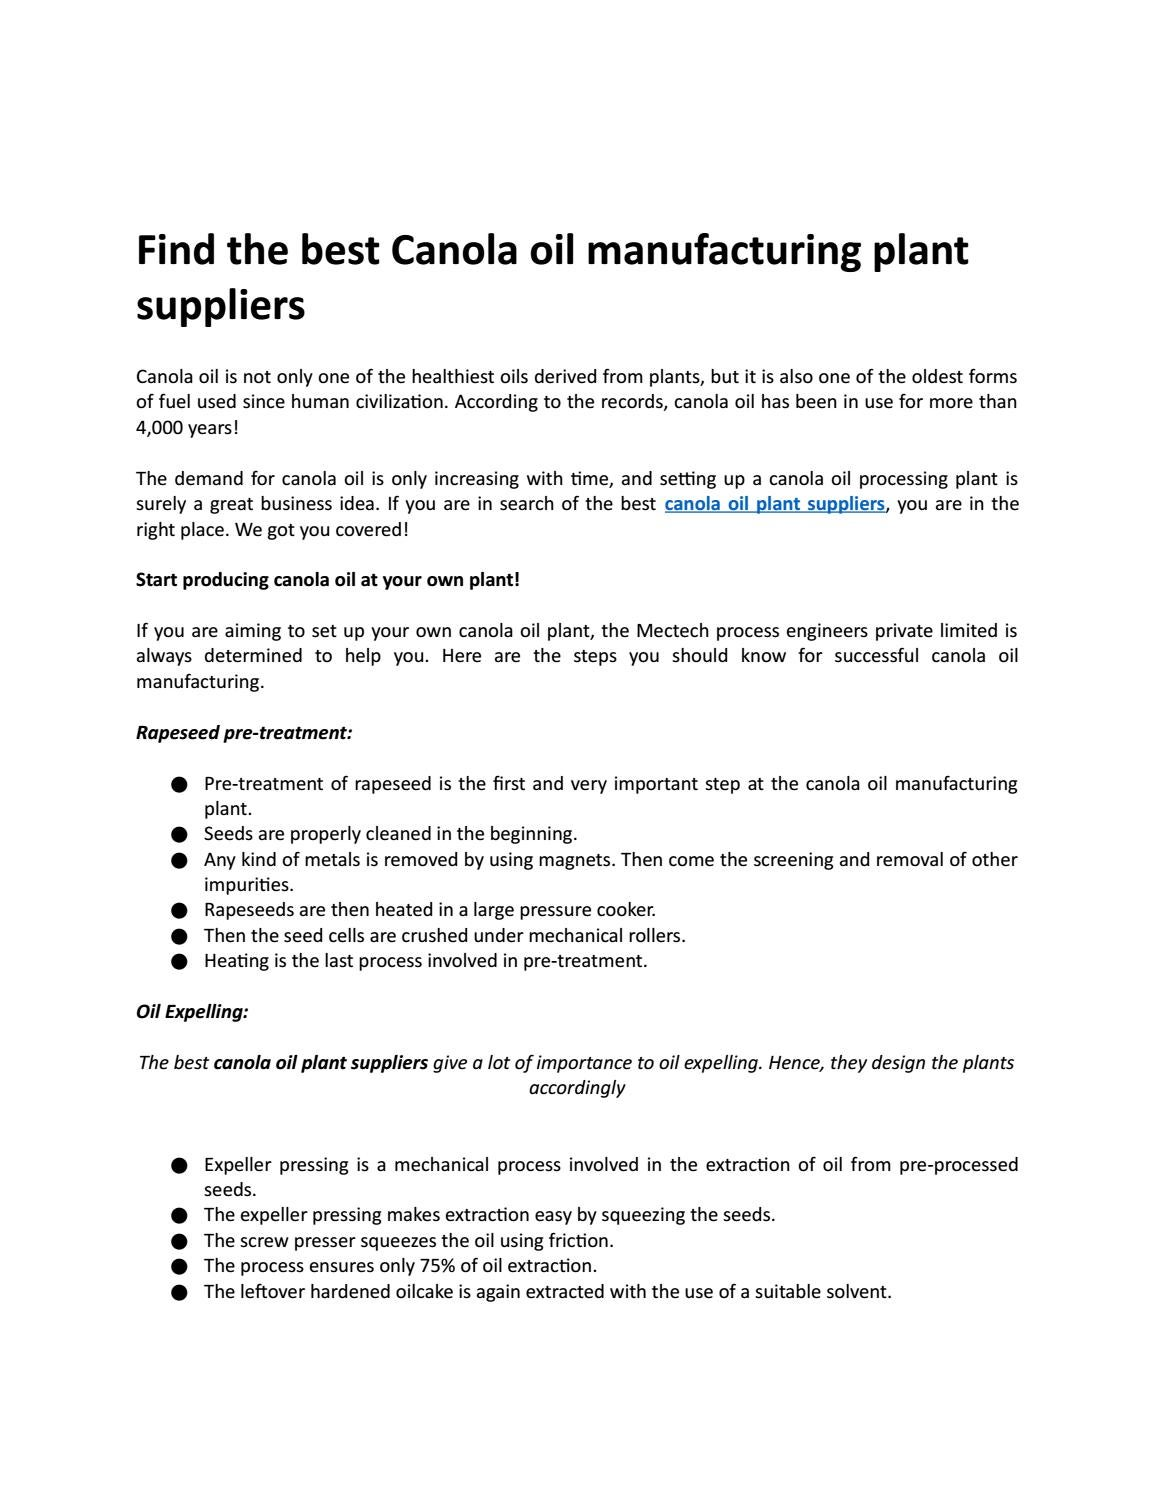 Find The Best Canola Oil Manufacturing Plant Suppliers By Mectech Process Engineers Issuu